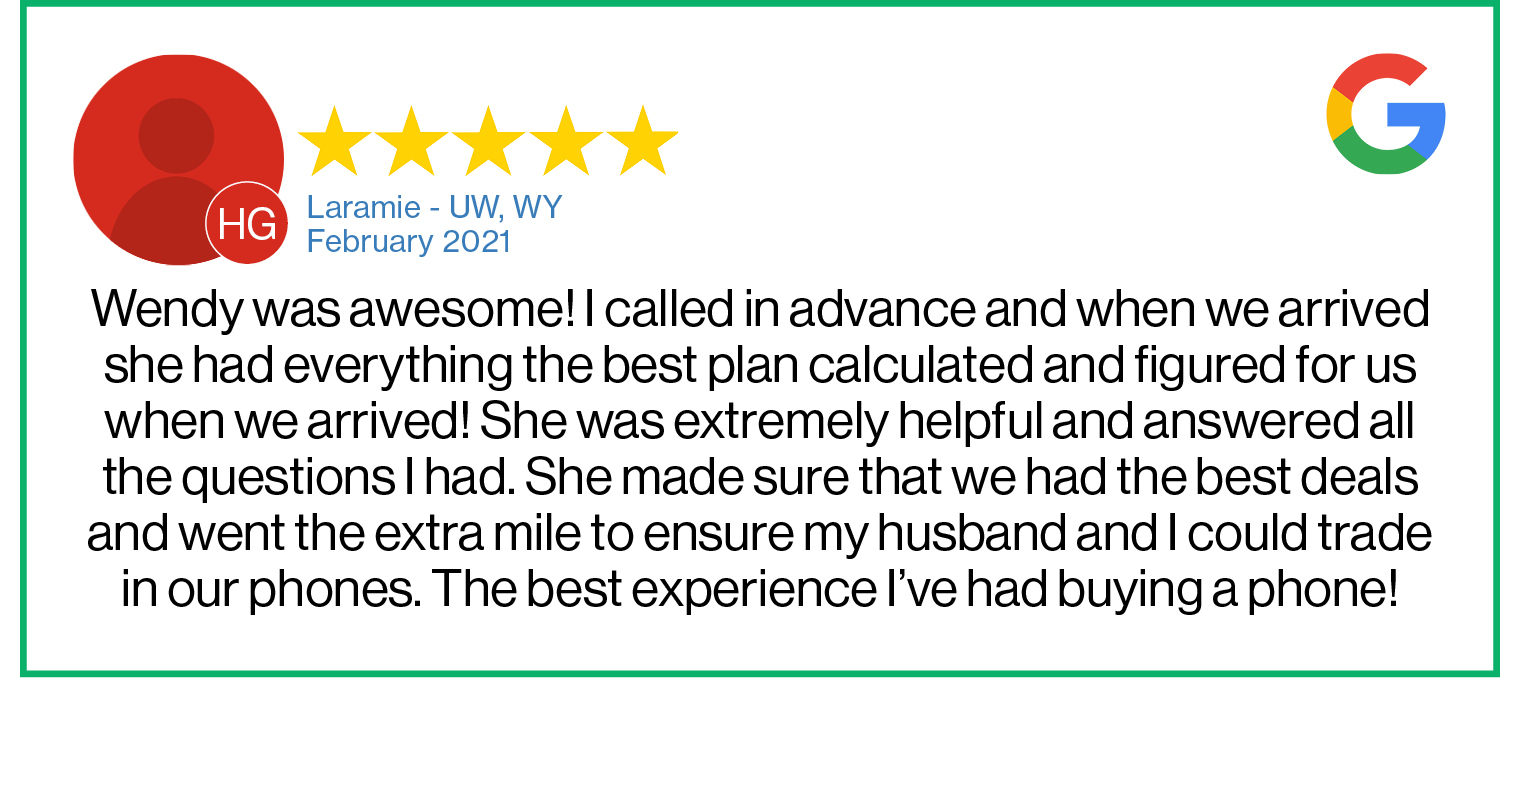 Check out this recent customer review about the Verizon Cellular Plus store in Laramie, WY